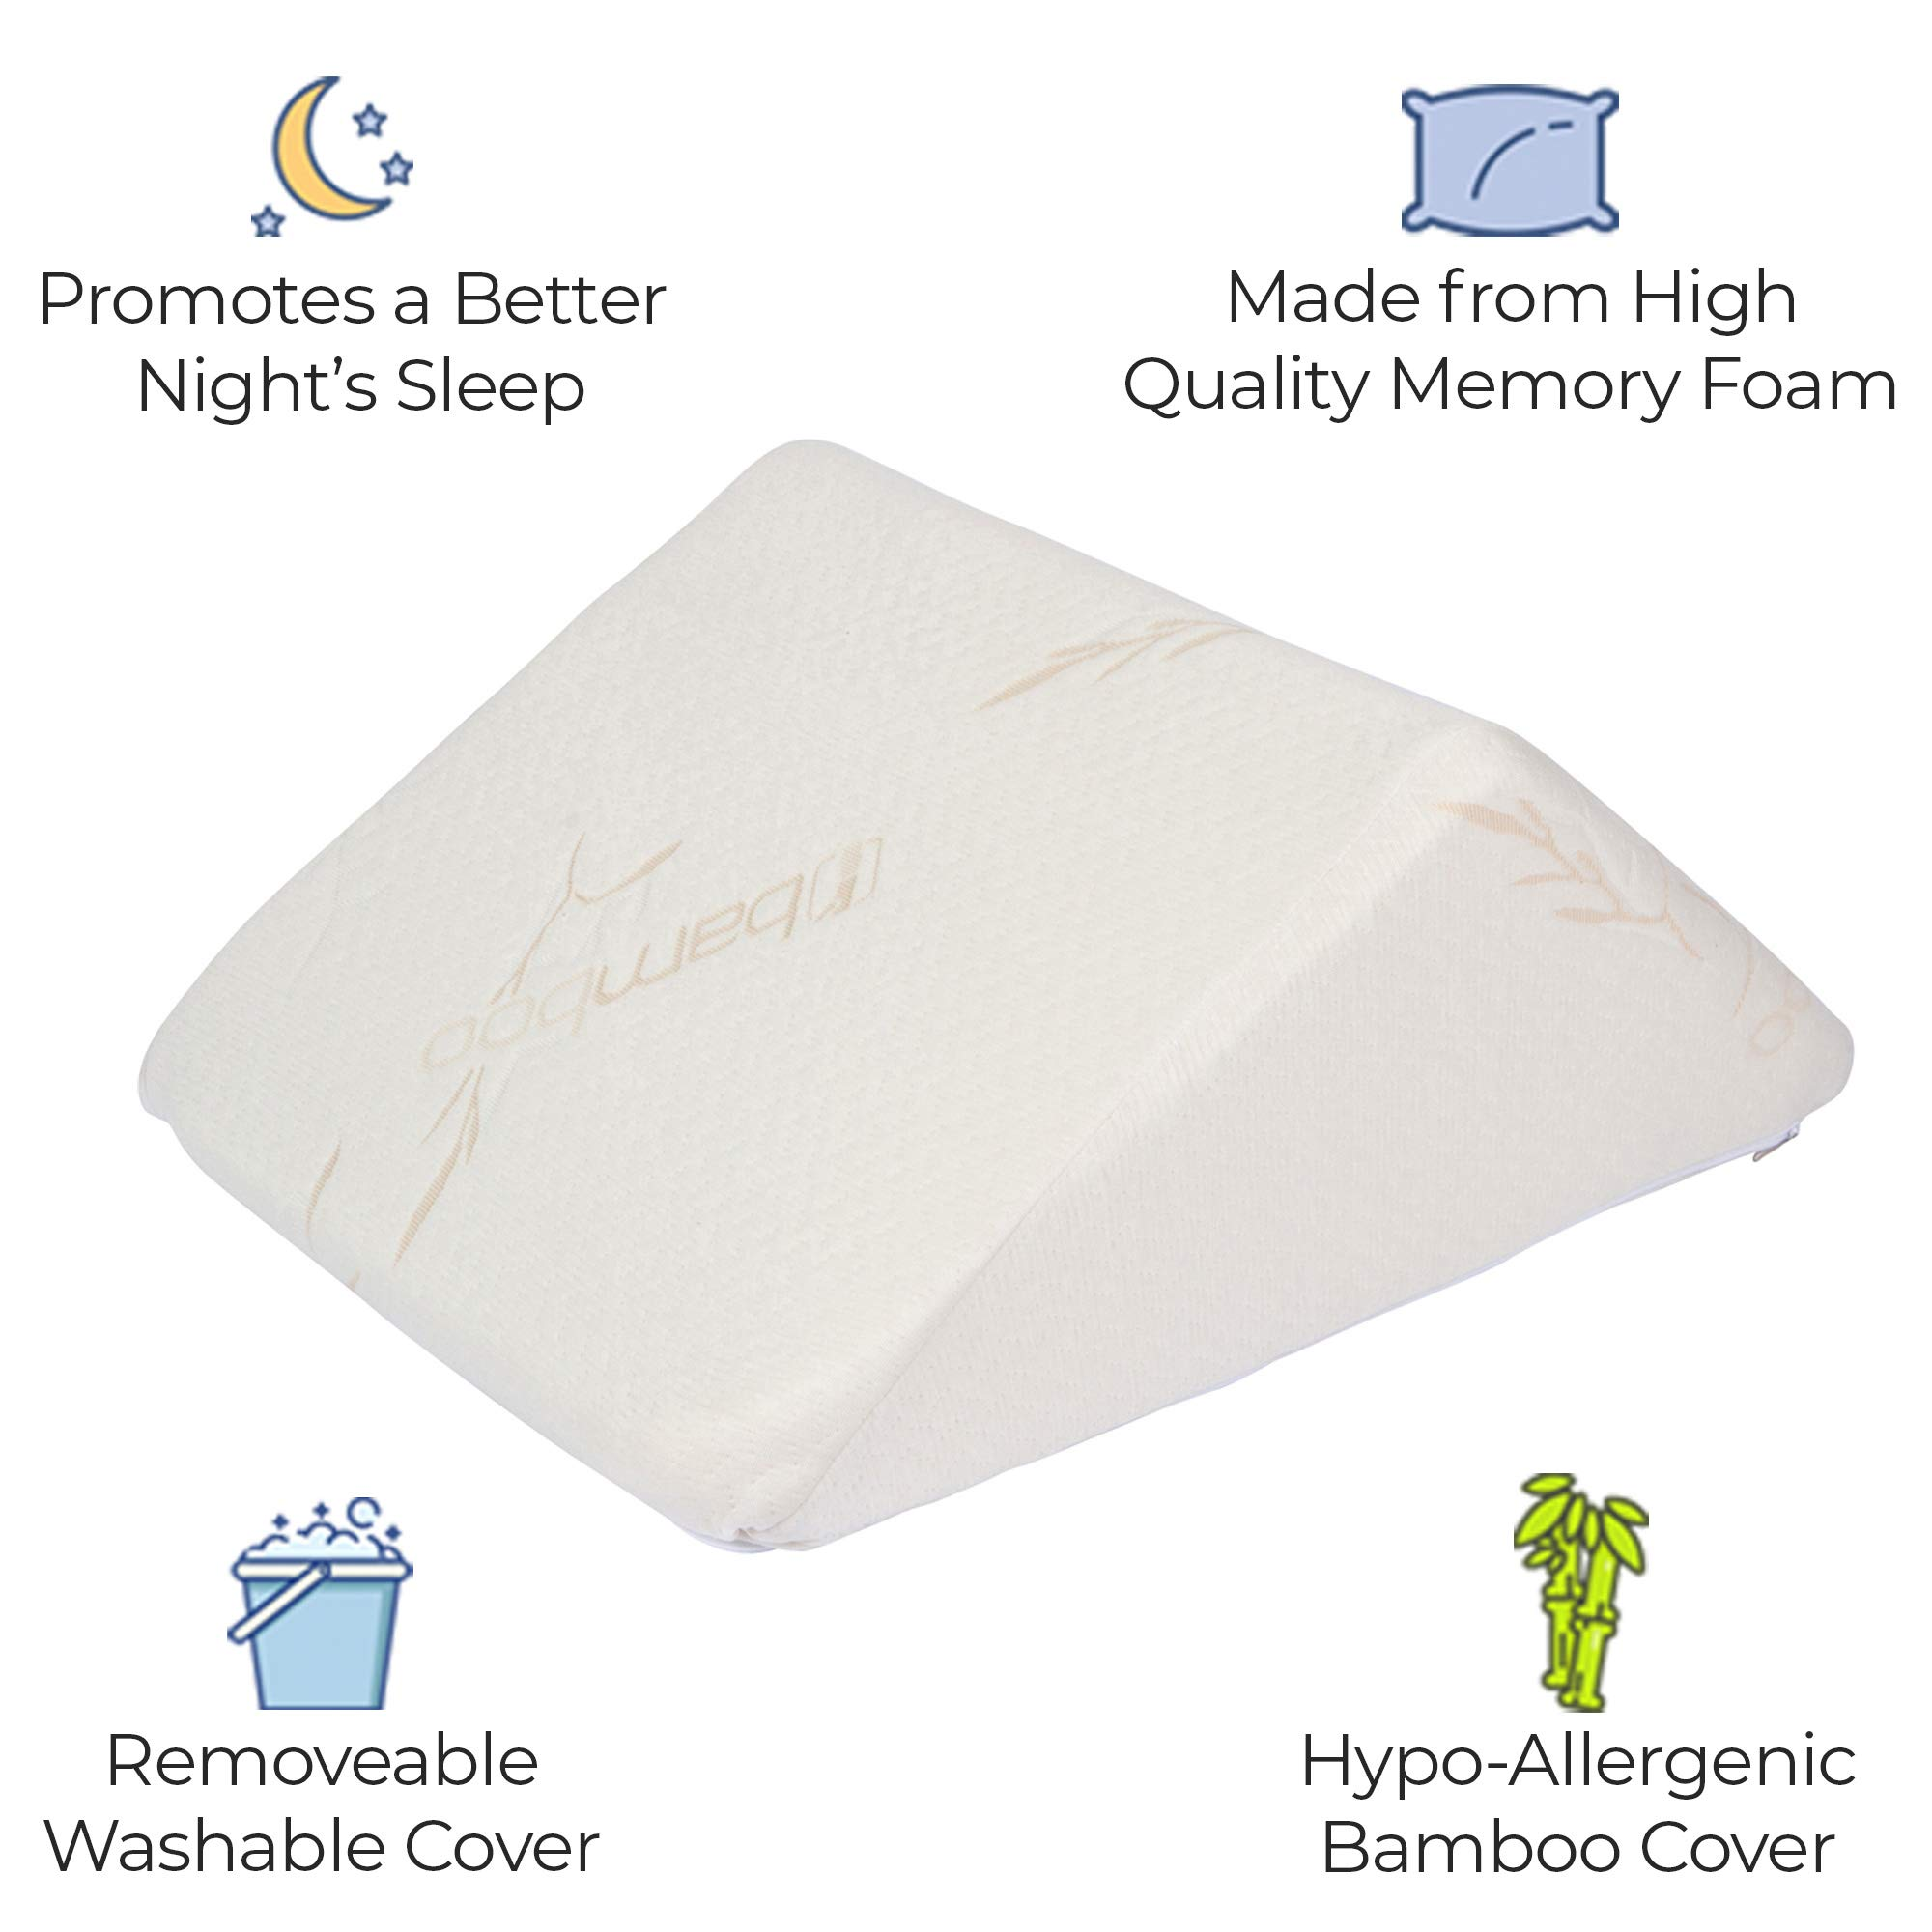 The Angle by Back Support Systems - Guaranteed to Help Reduce Back Pain Immediately. Eco Friendly, Medical Quality Memory Foam Bed Wedge Leg Pillow for Reducing Back Pain, Back Therapy and Sleeping by Back Support Systems (Image #2)